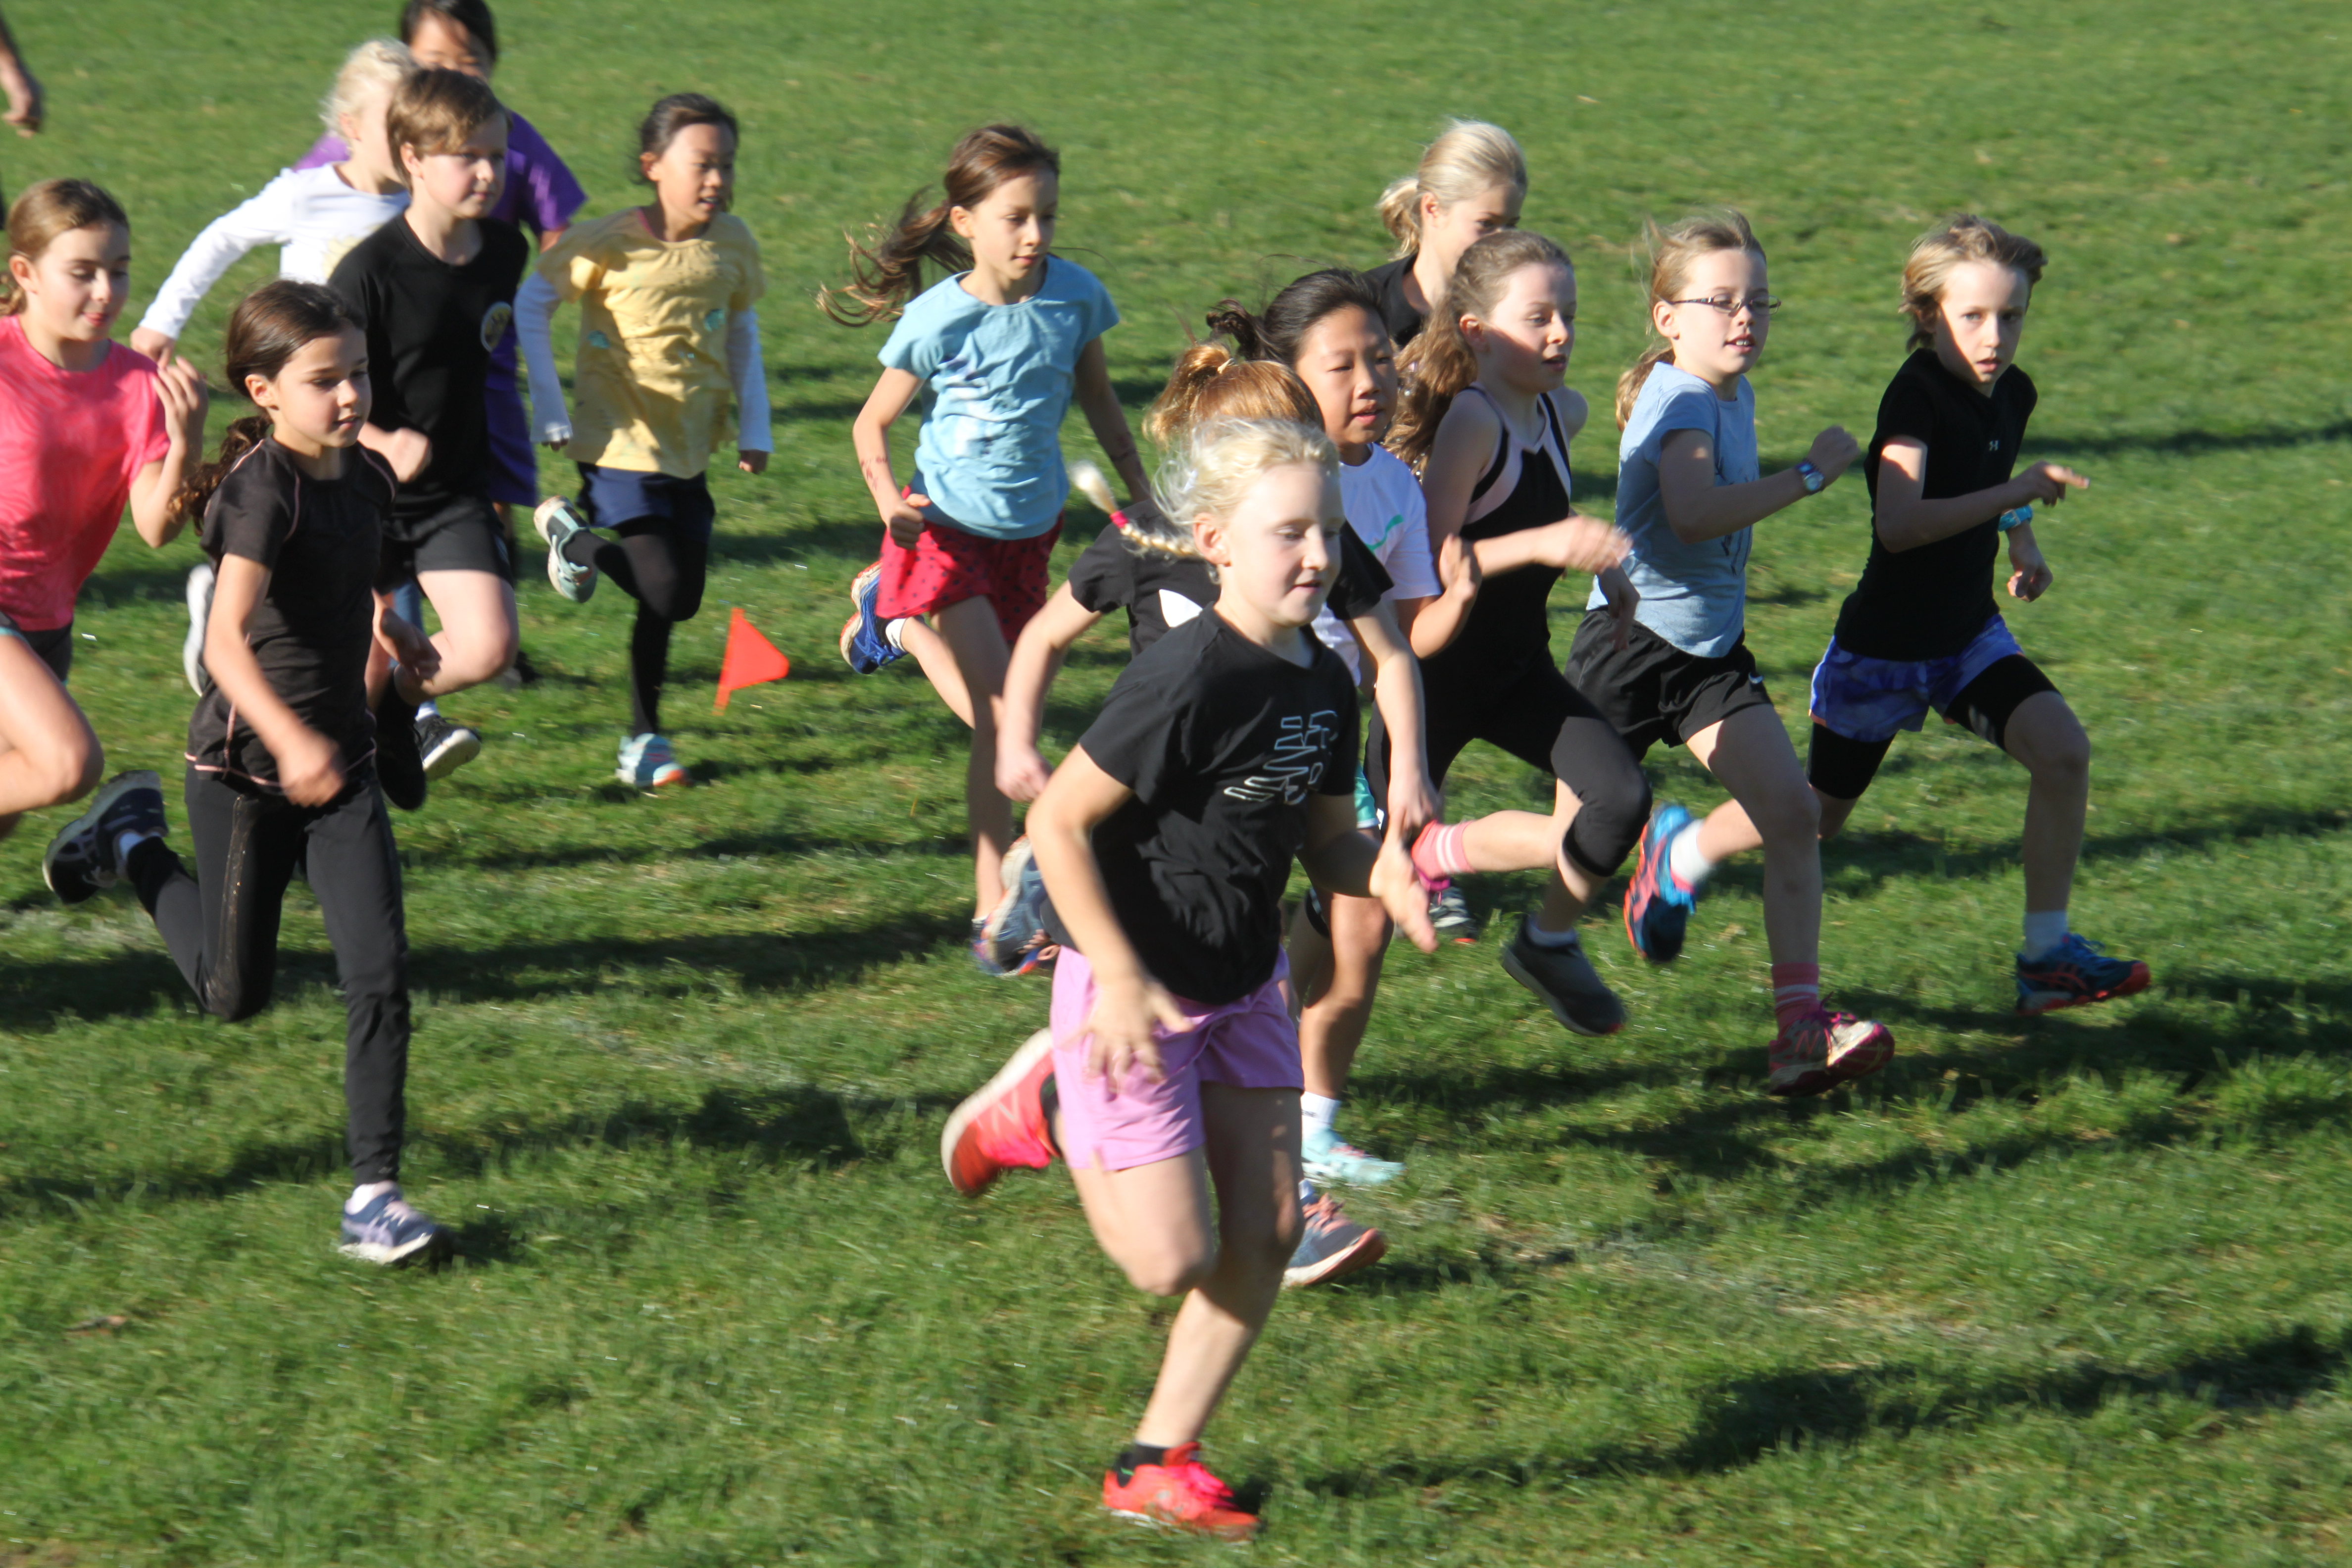 Year 4 Challenge 4 Girls race